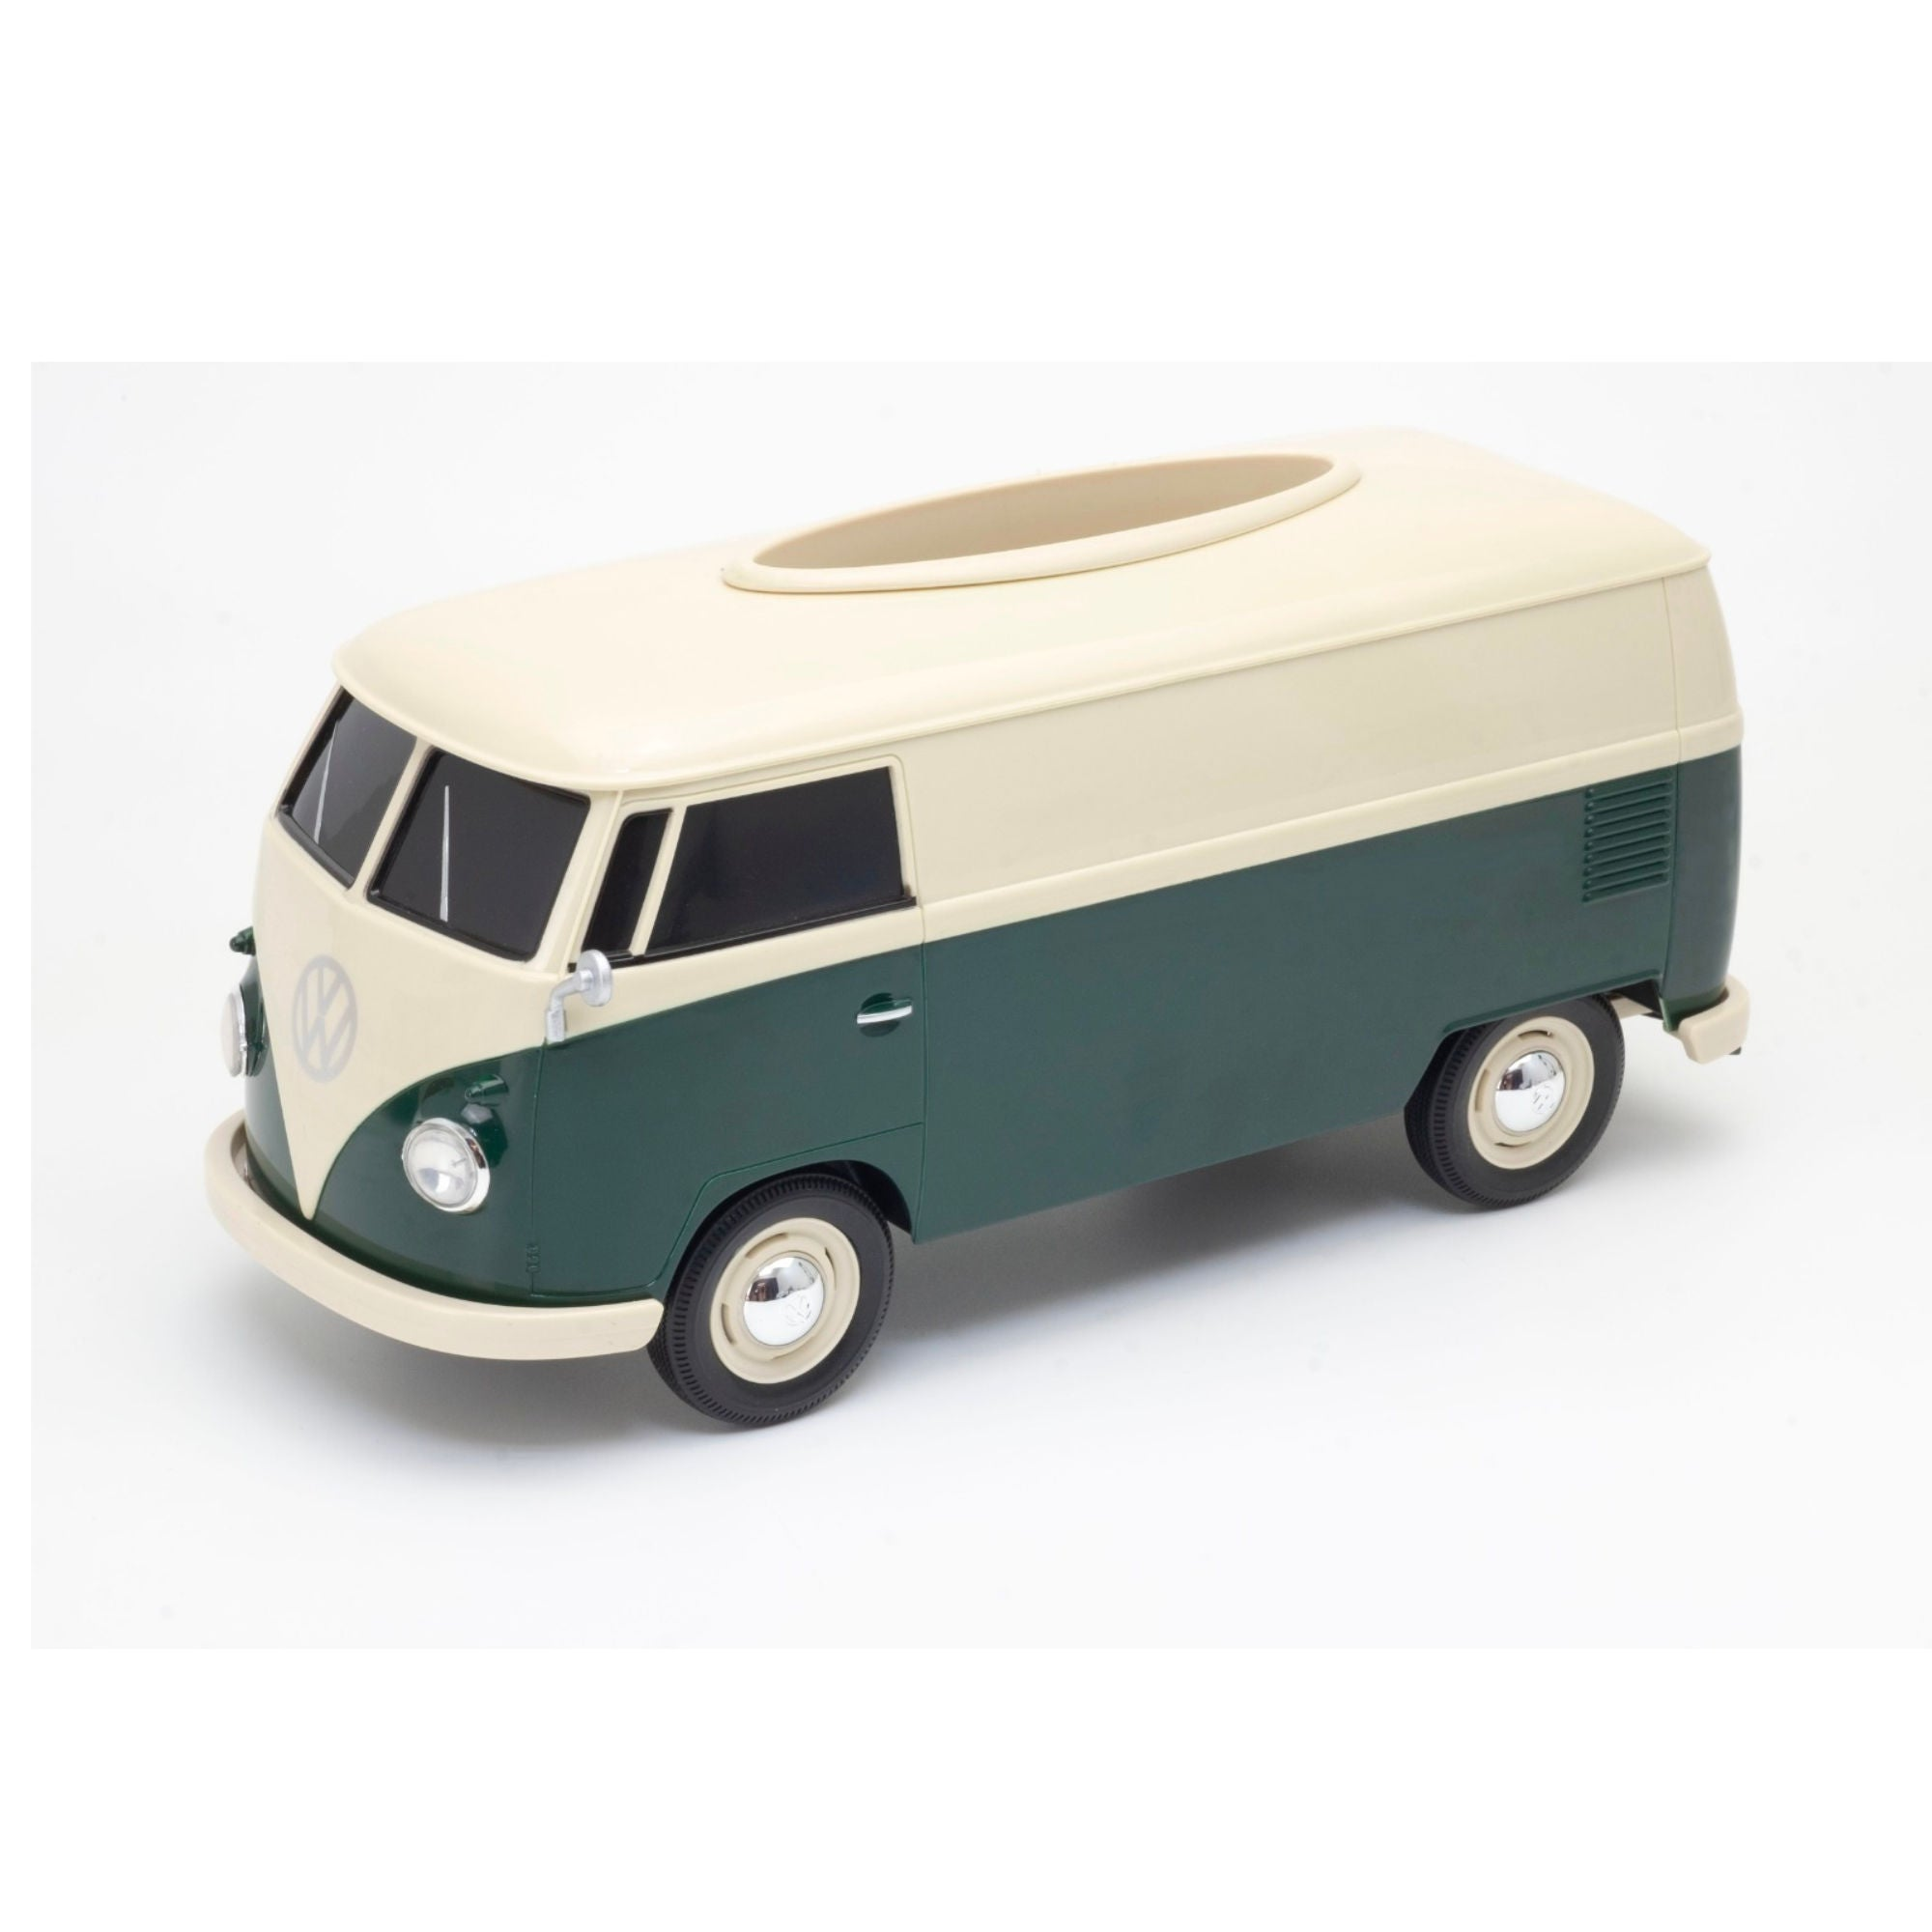 Volkswagen VW T1 Bue 1:16 Tissue Box , Green-Cream